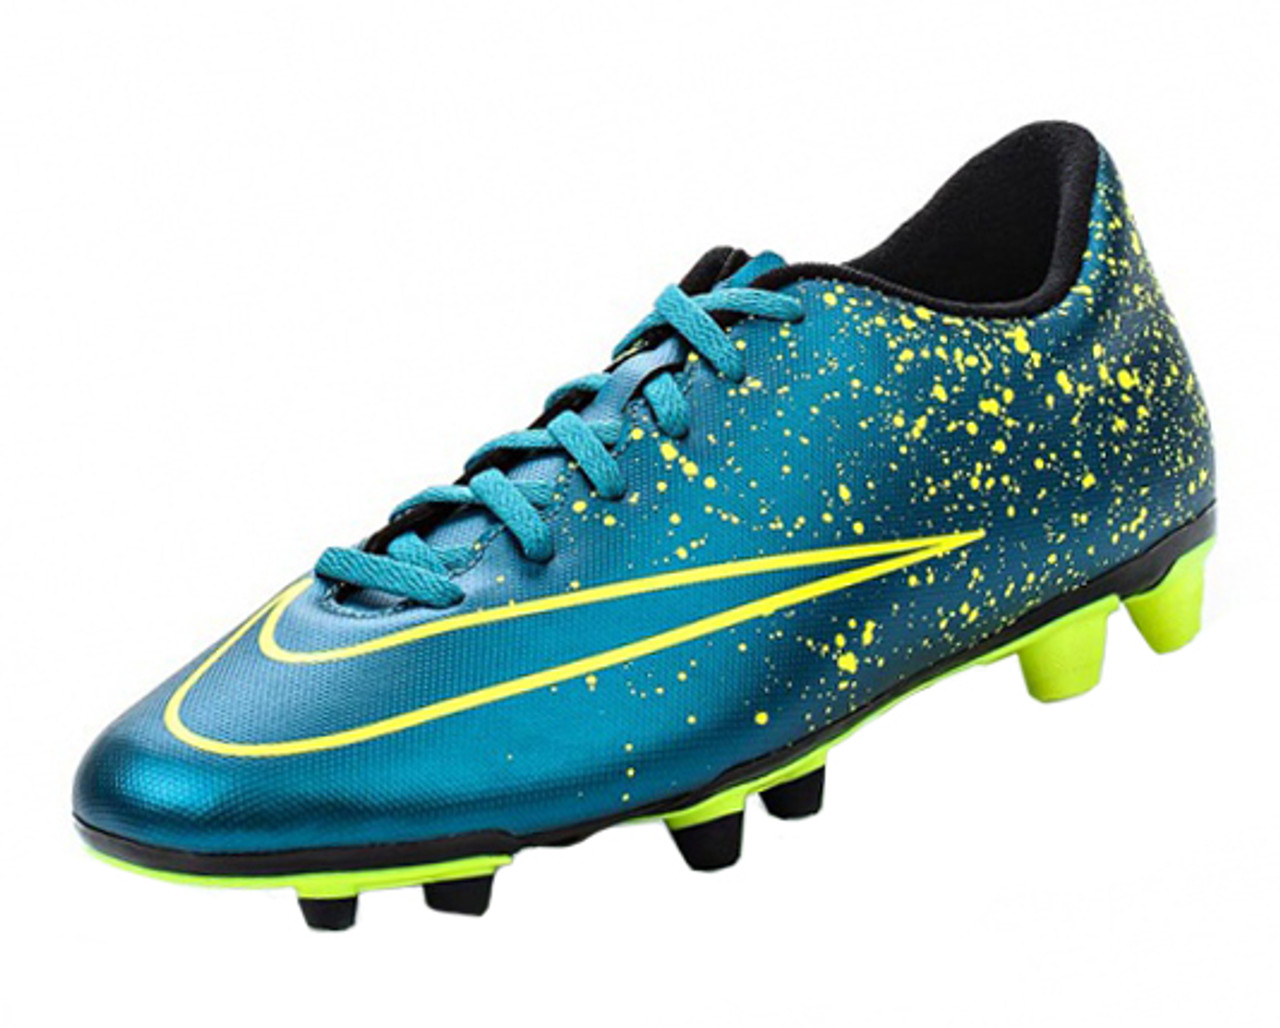 7c58a050030 Nike Mercurial Vortex II FG - Squadron Blue Volt RC - Cheap Nike Football  Boots Sale